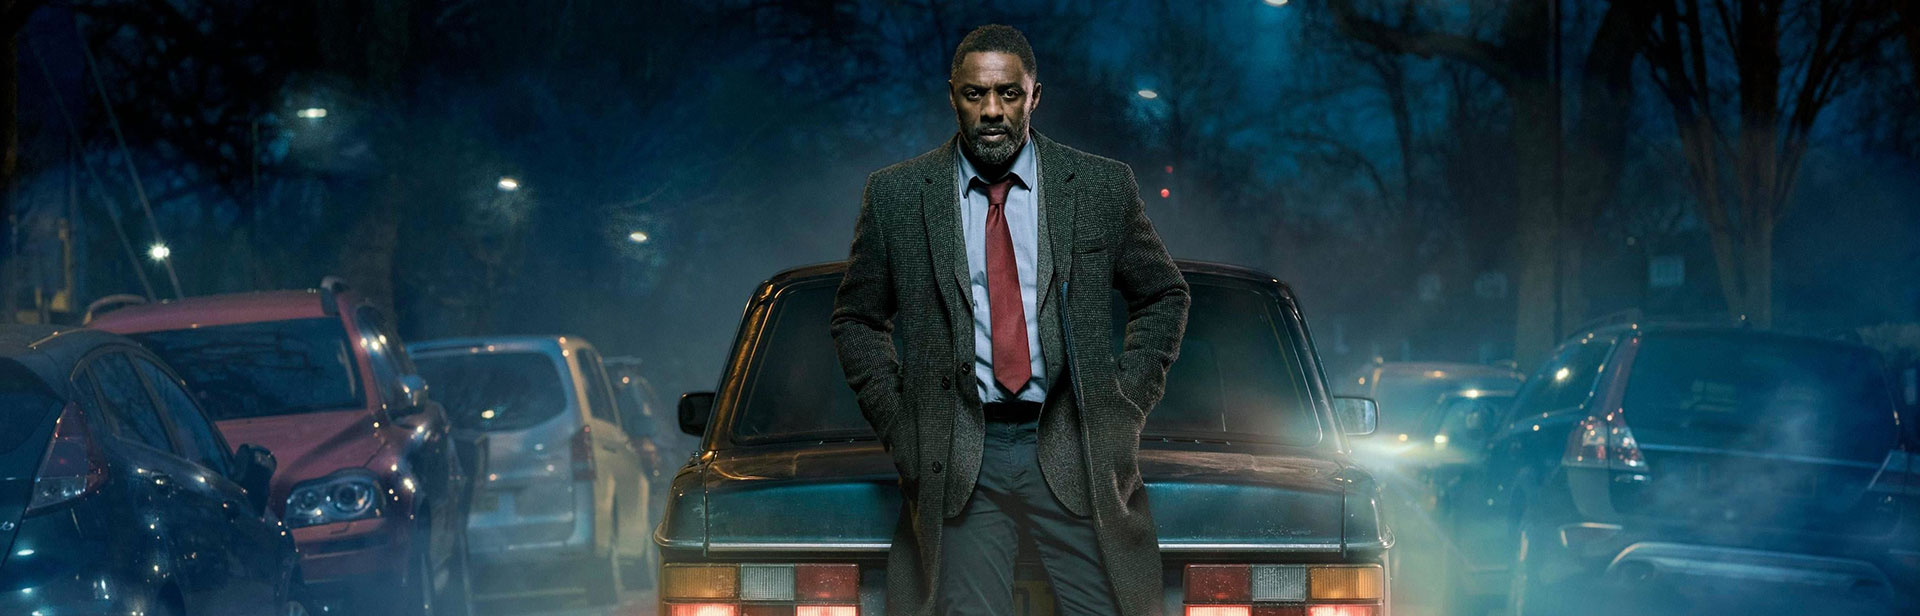 Spoiler Alert: Here's The Biggest Plot Twist From Luther Season 5